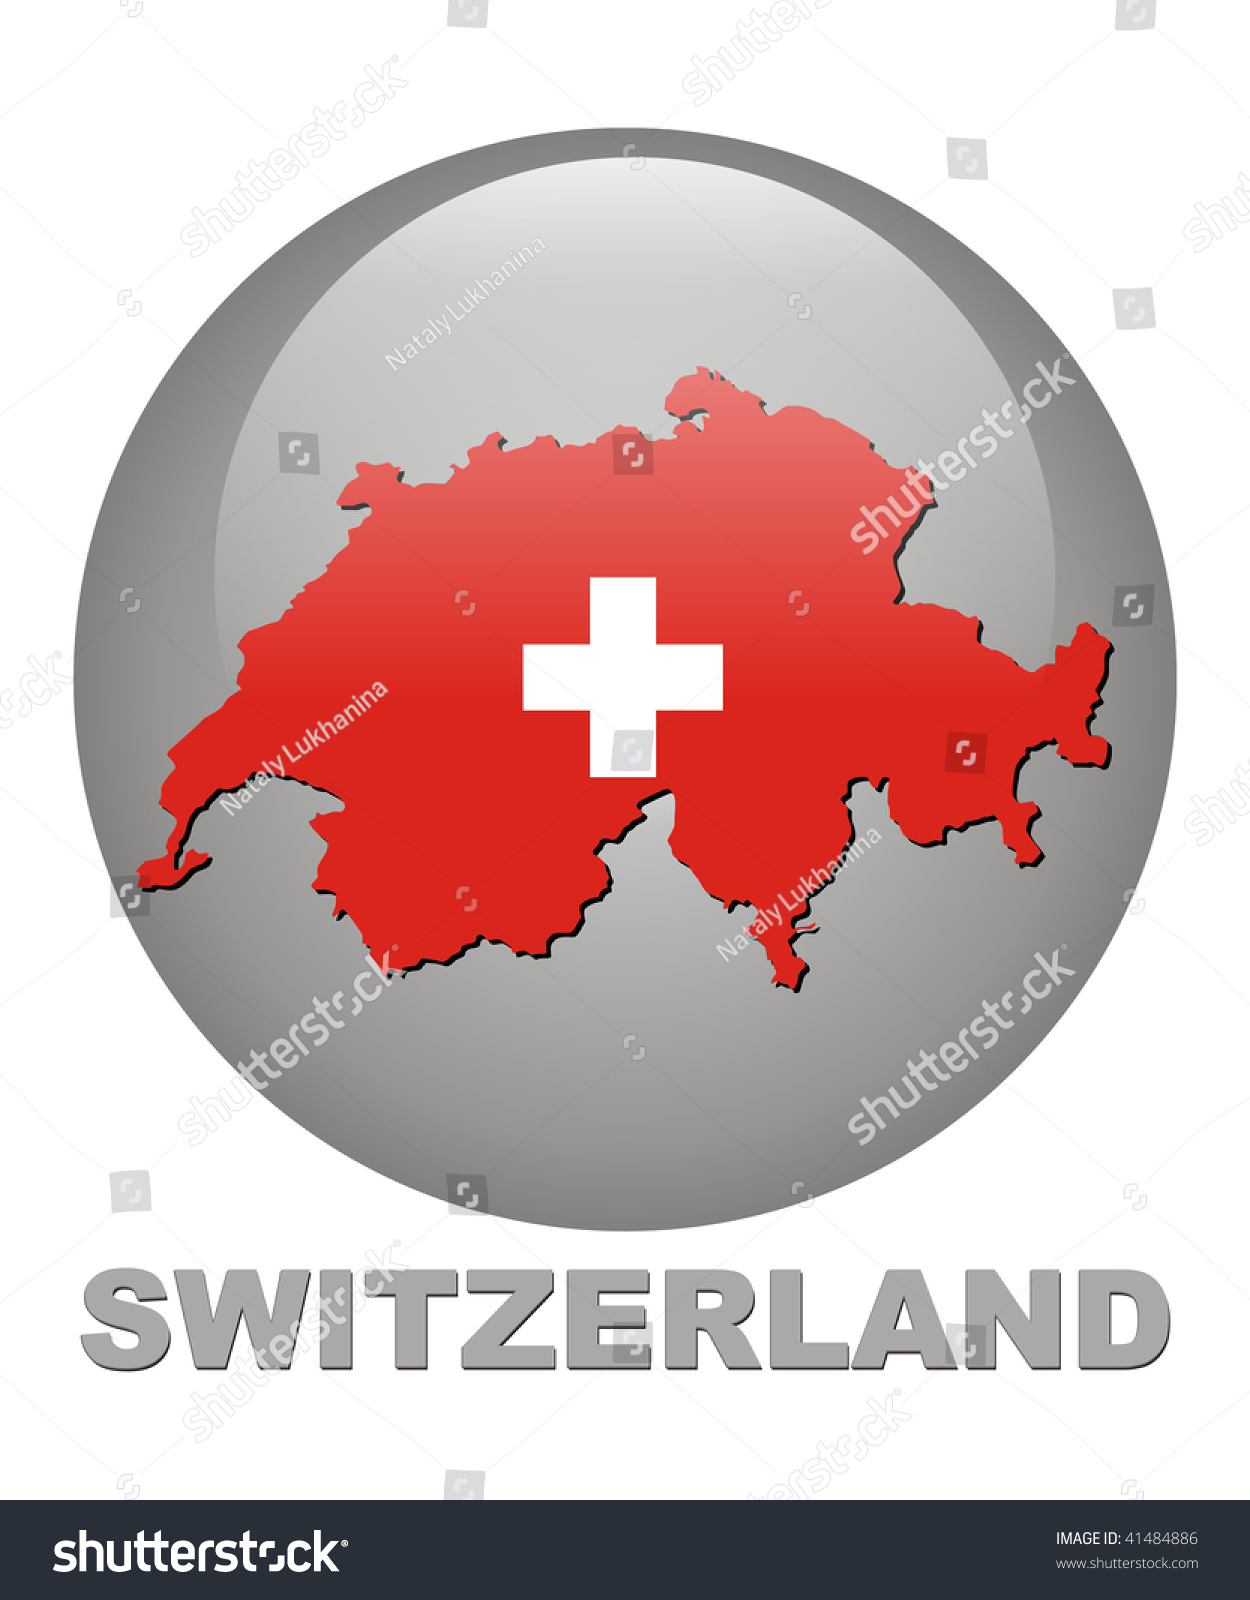 Country Symbols Switzerland Territory Card Arms Stock Illustration